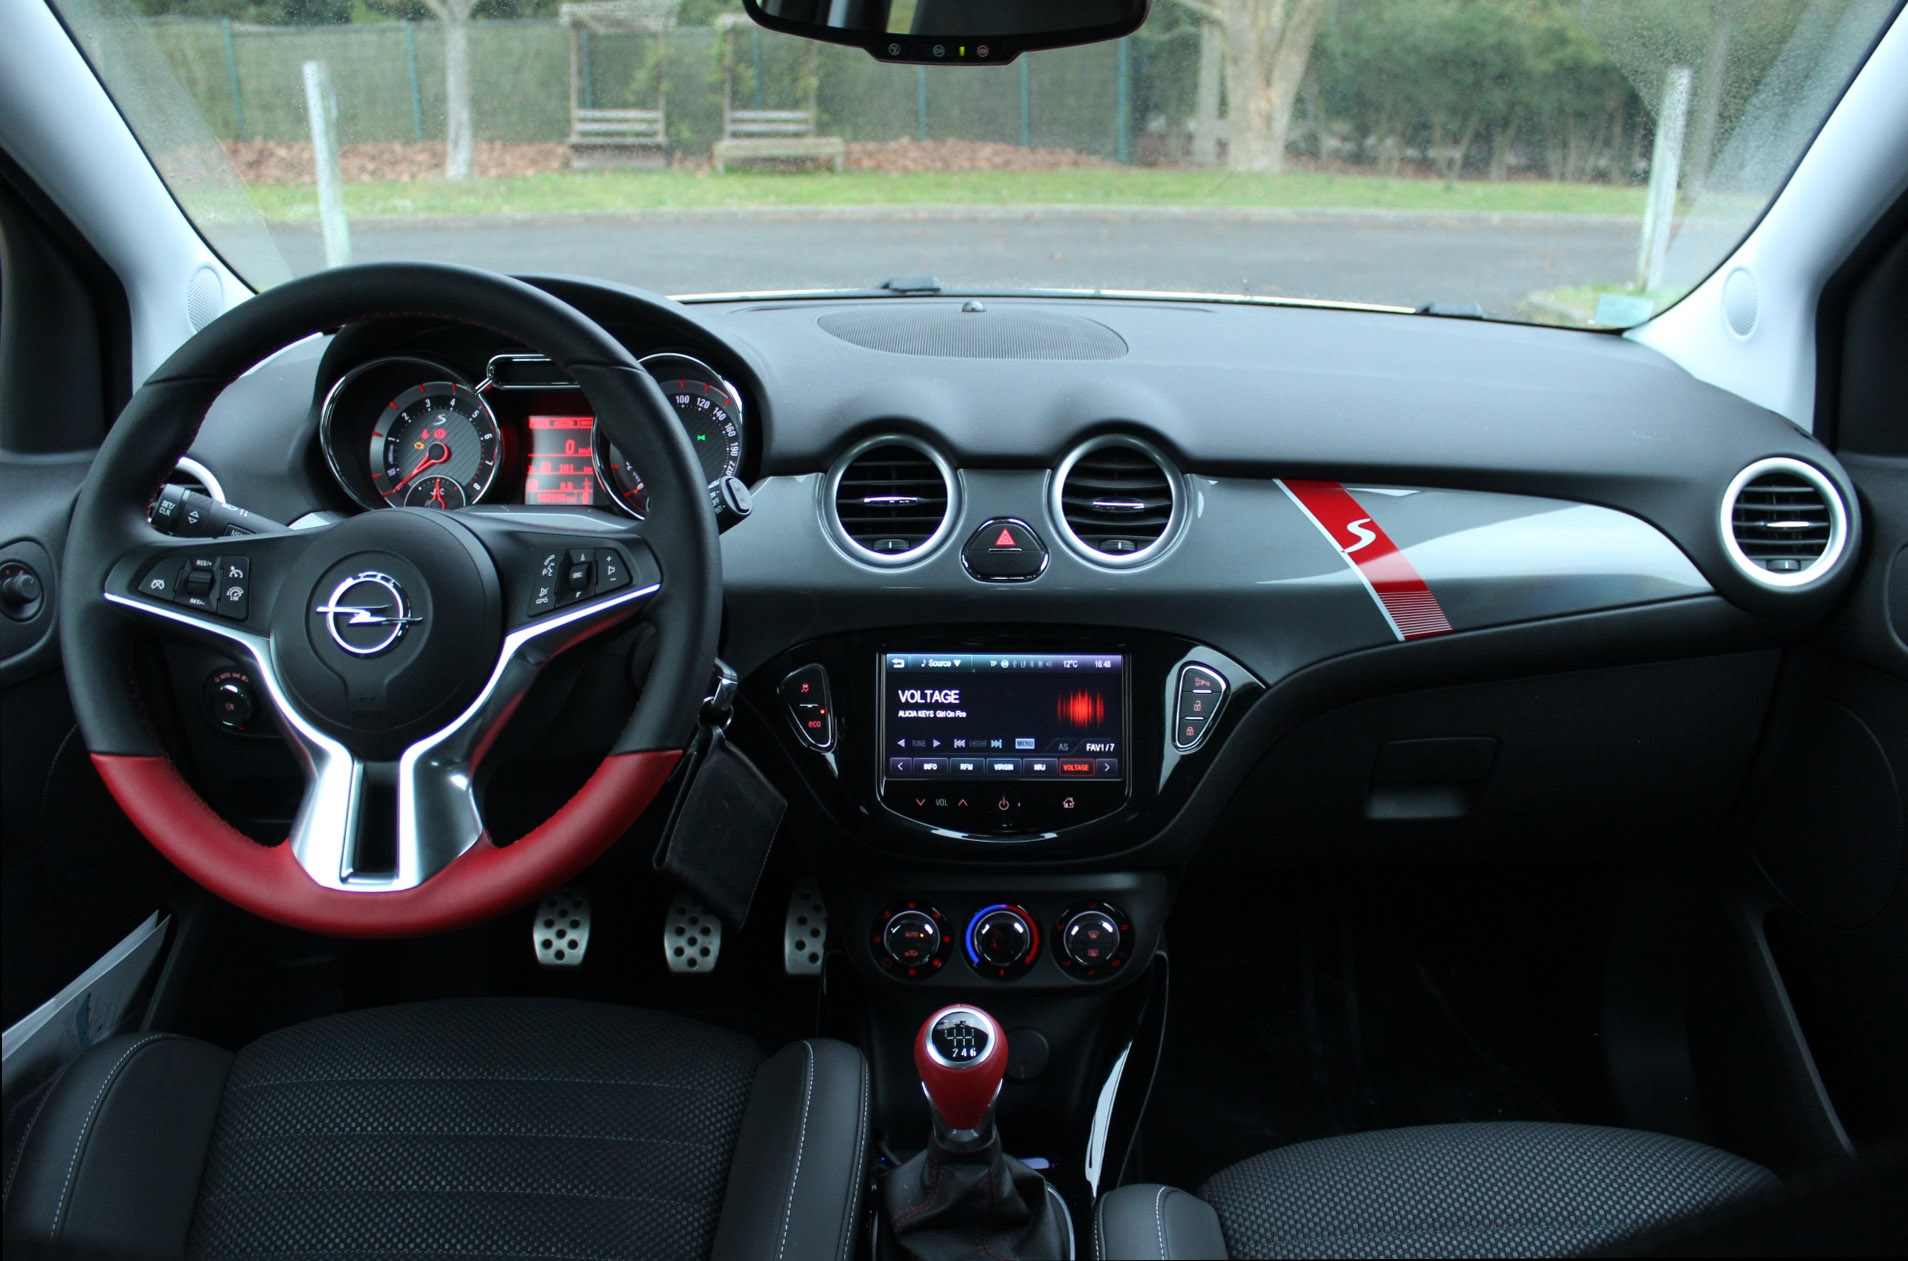 Essai opel adam s le fruit de la tentation for Opel adam s interieur